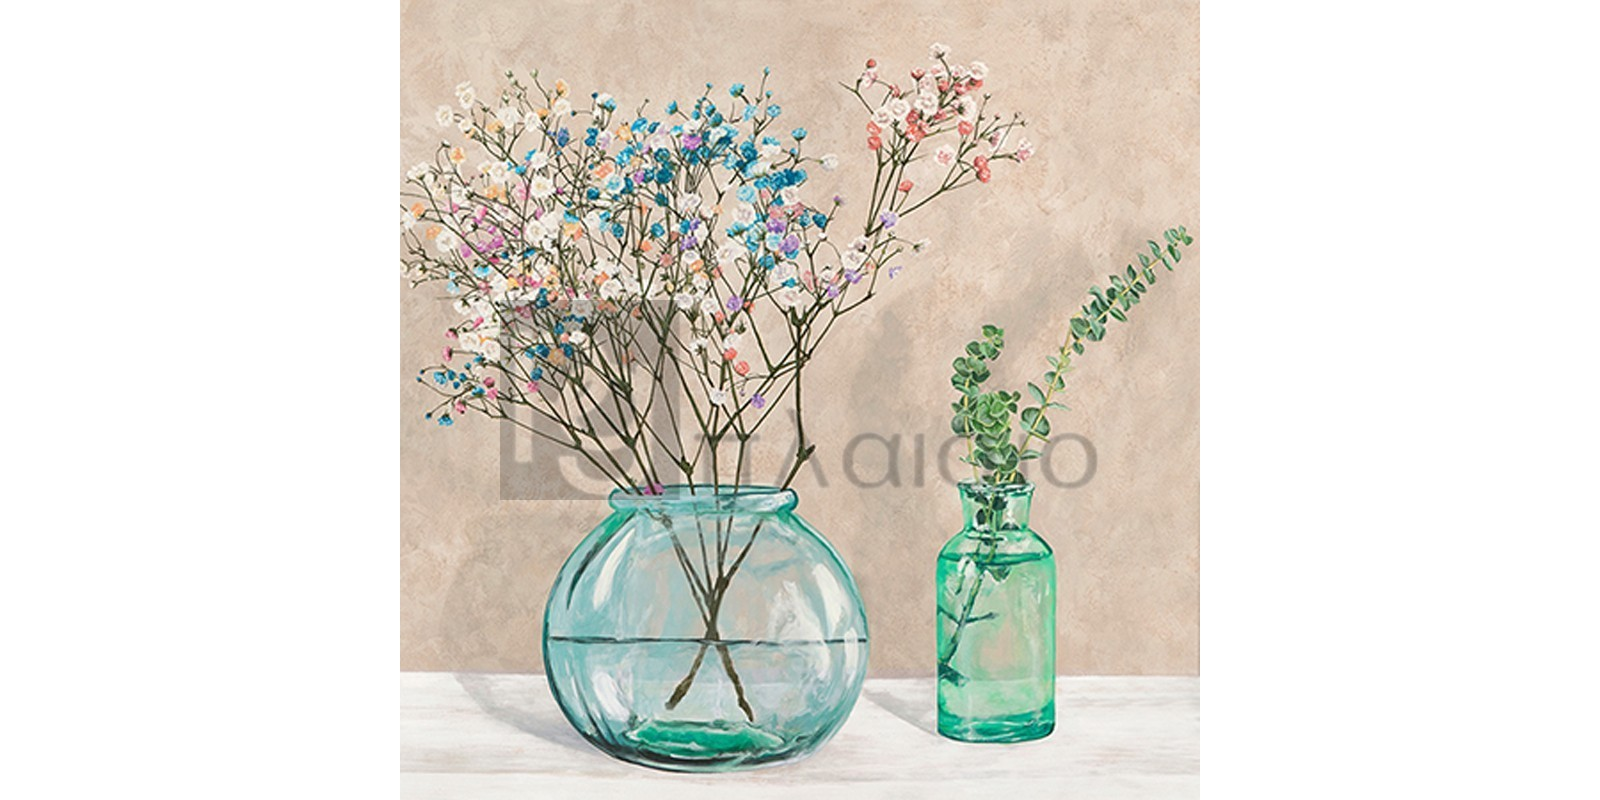 Jenny Thomlinson - Floral setting with glass vases I